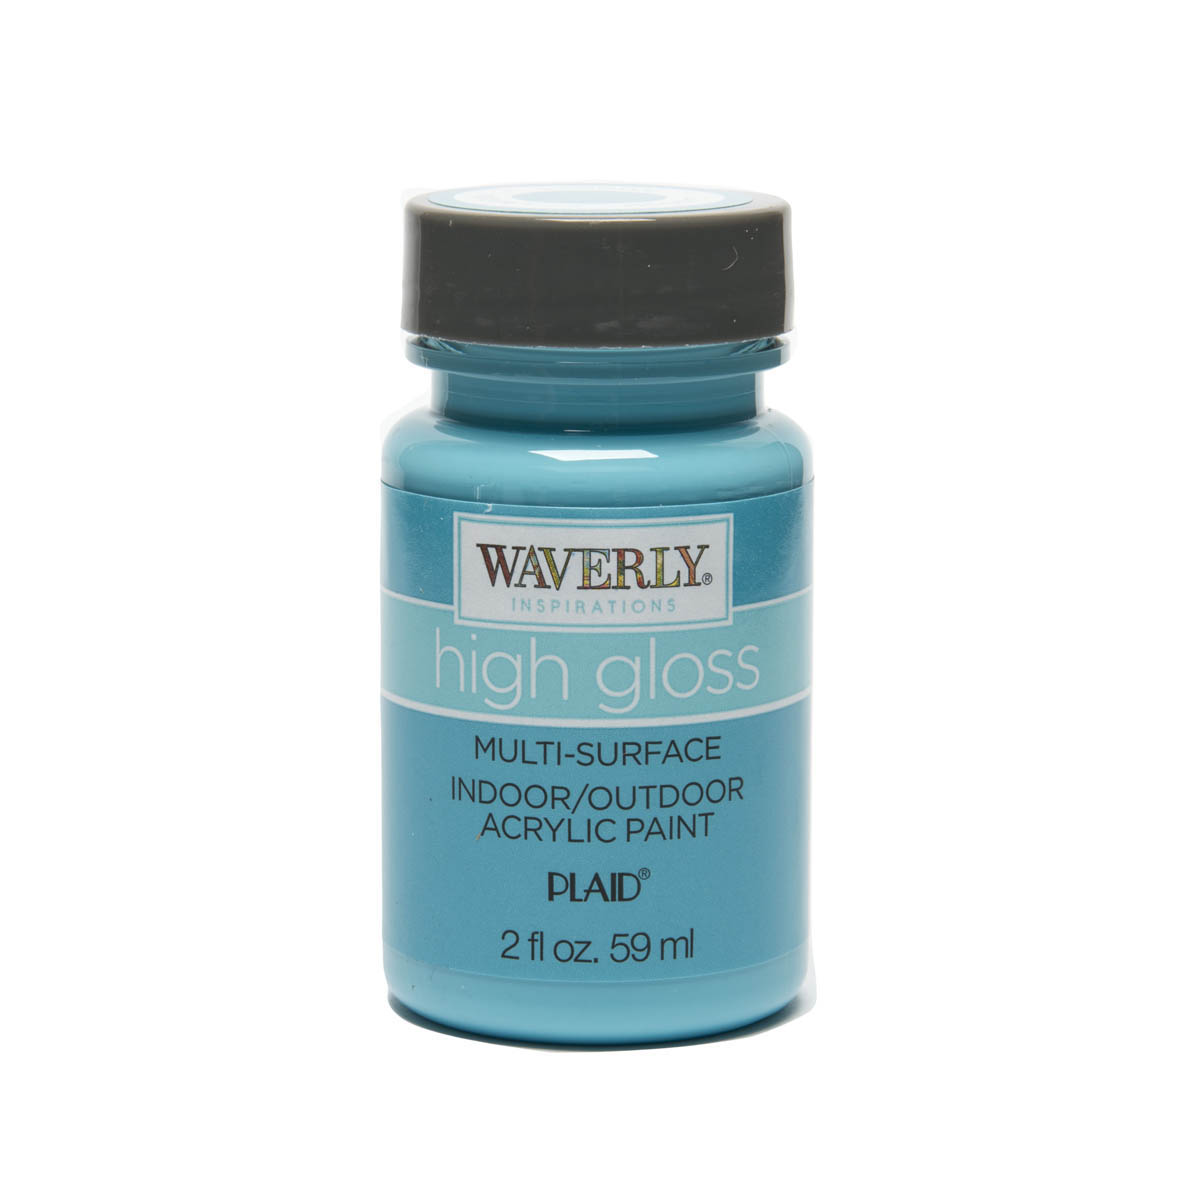 Waverly ® Inspirations High Gloss Multi-Surface Acrylic Paint - Lagoon, 2 oz.